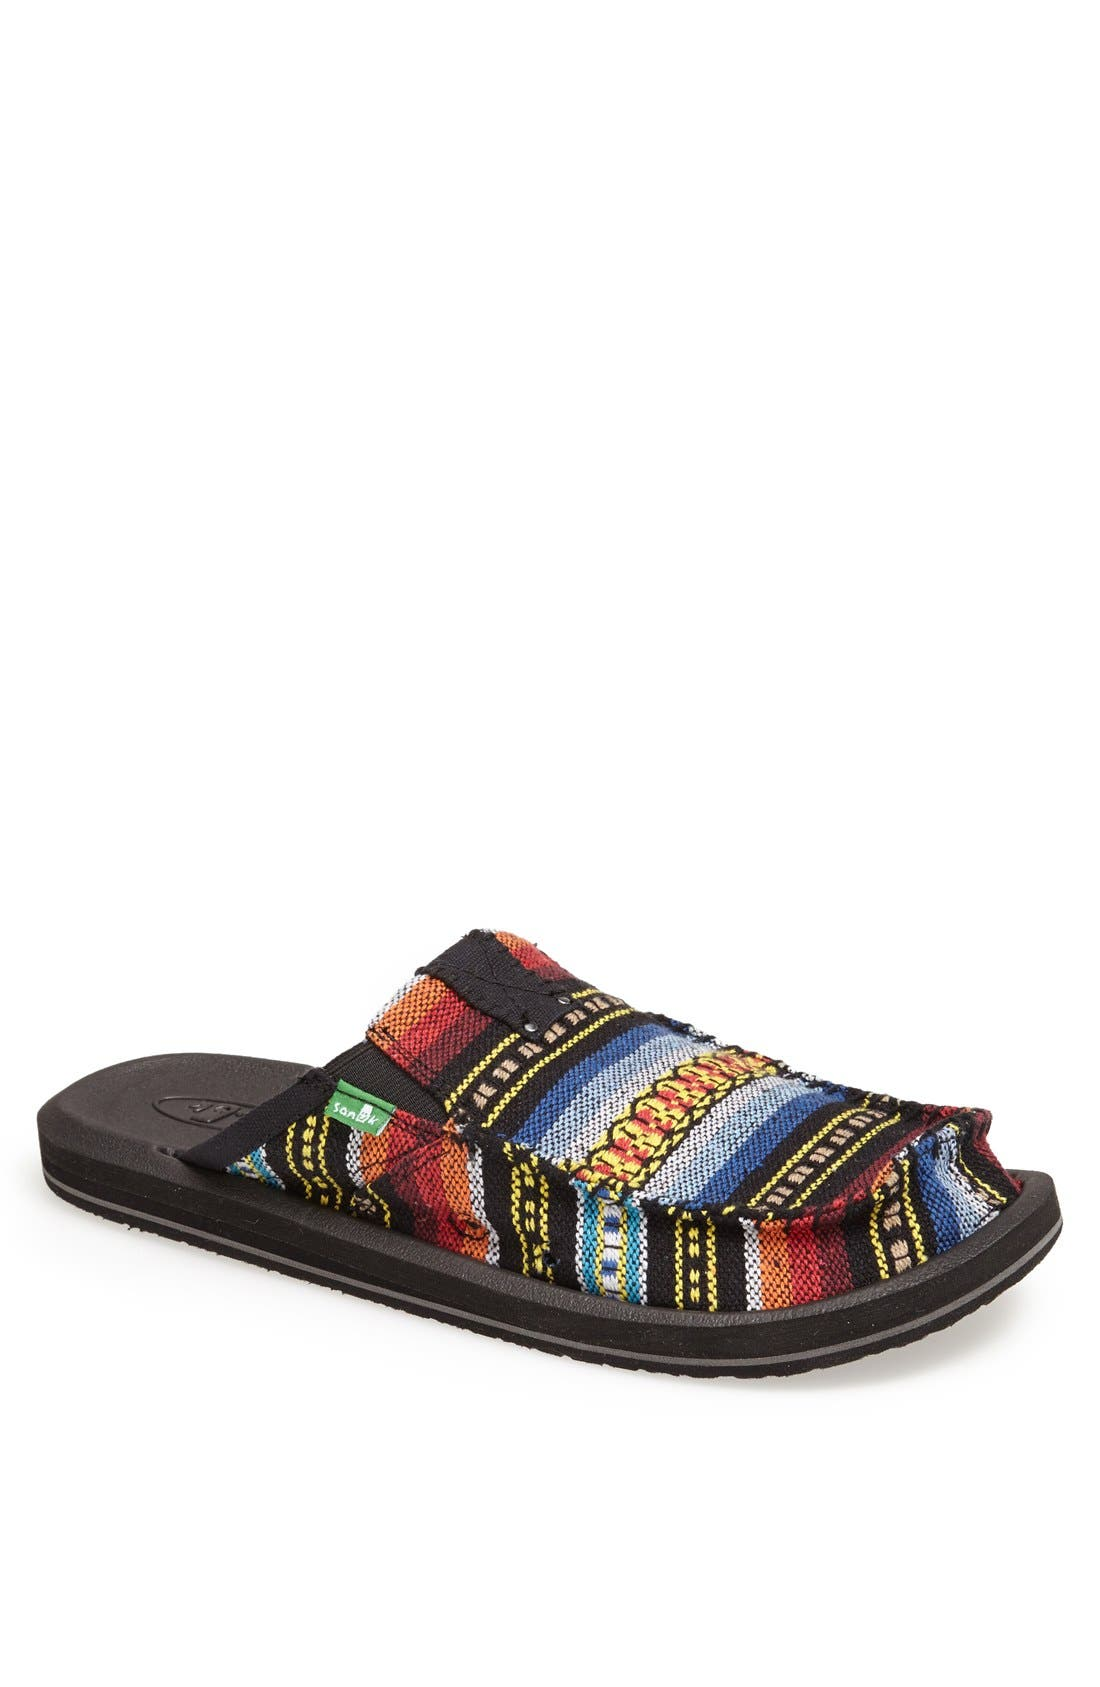 Alternate Image 1 Selected - Sanuk 'You Got My Back II' Sandal (Men)